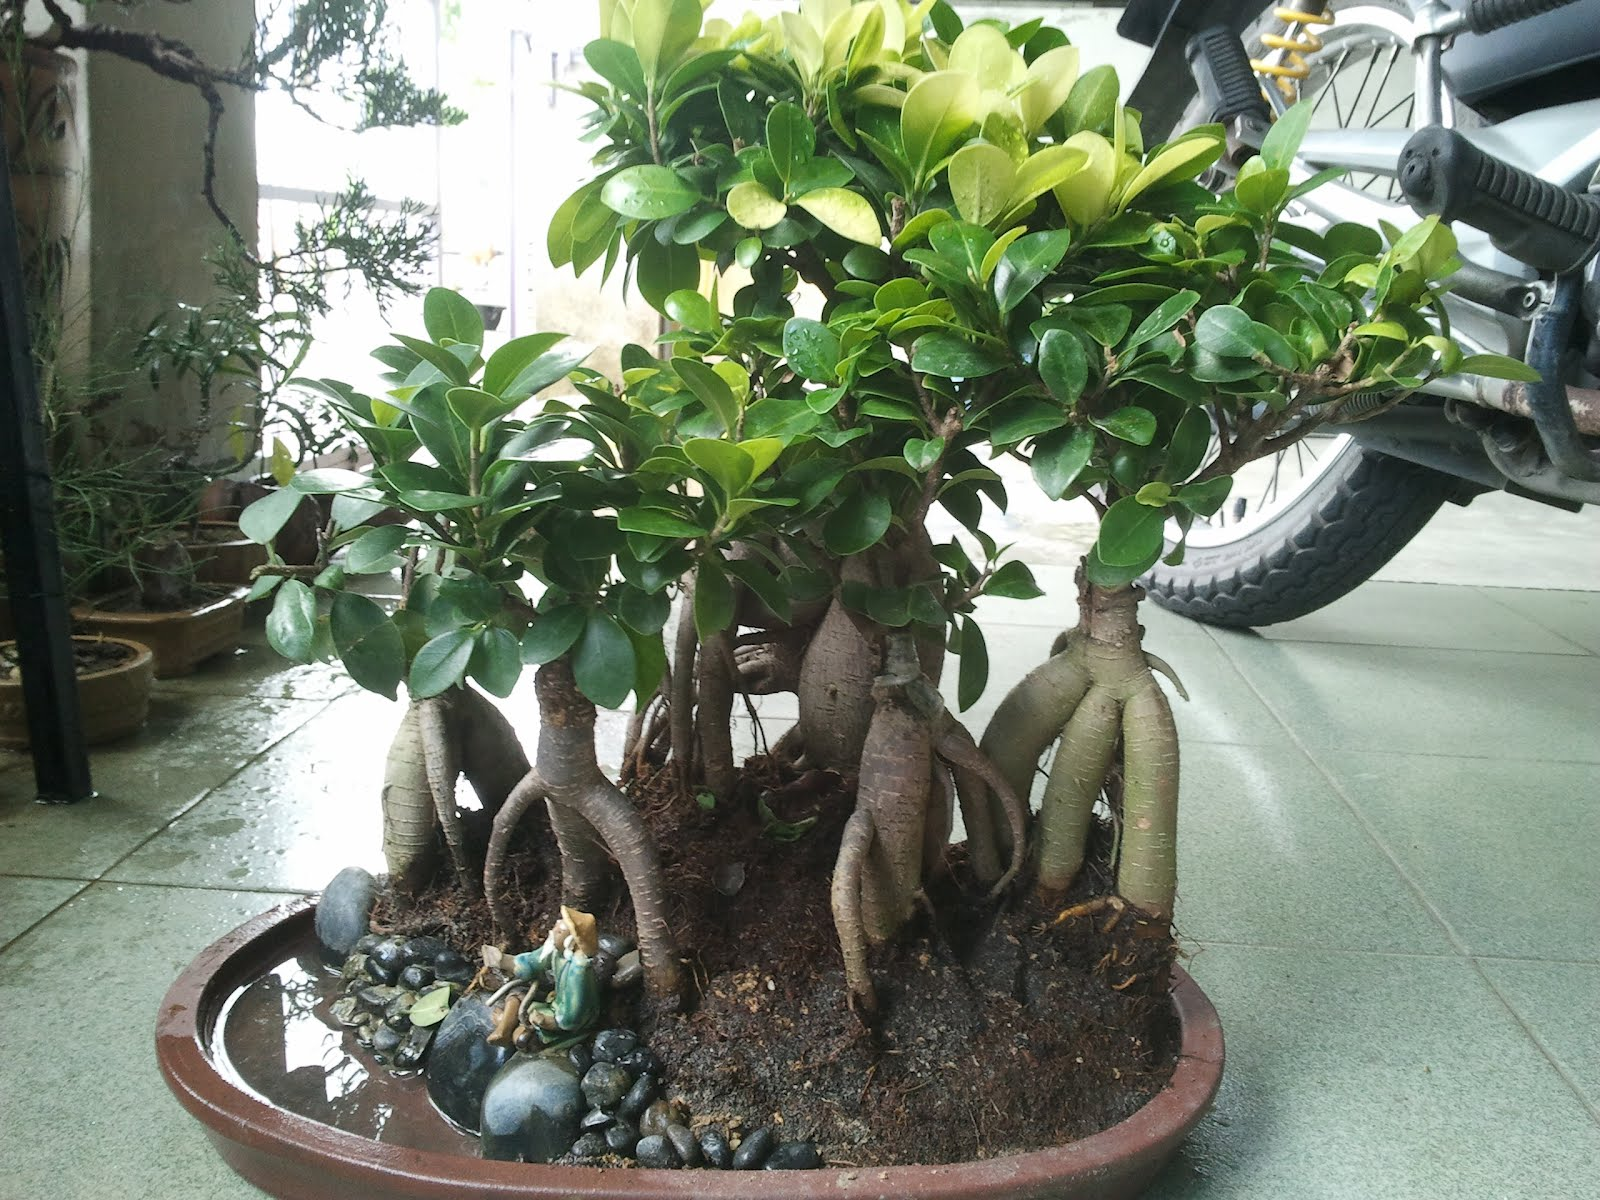 Yanashimi Bonsai